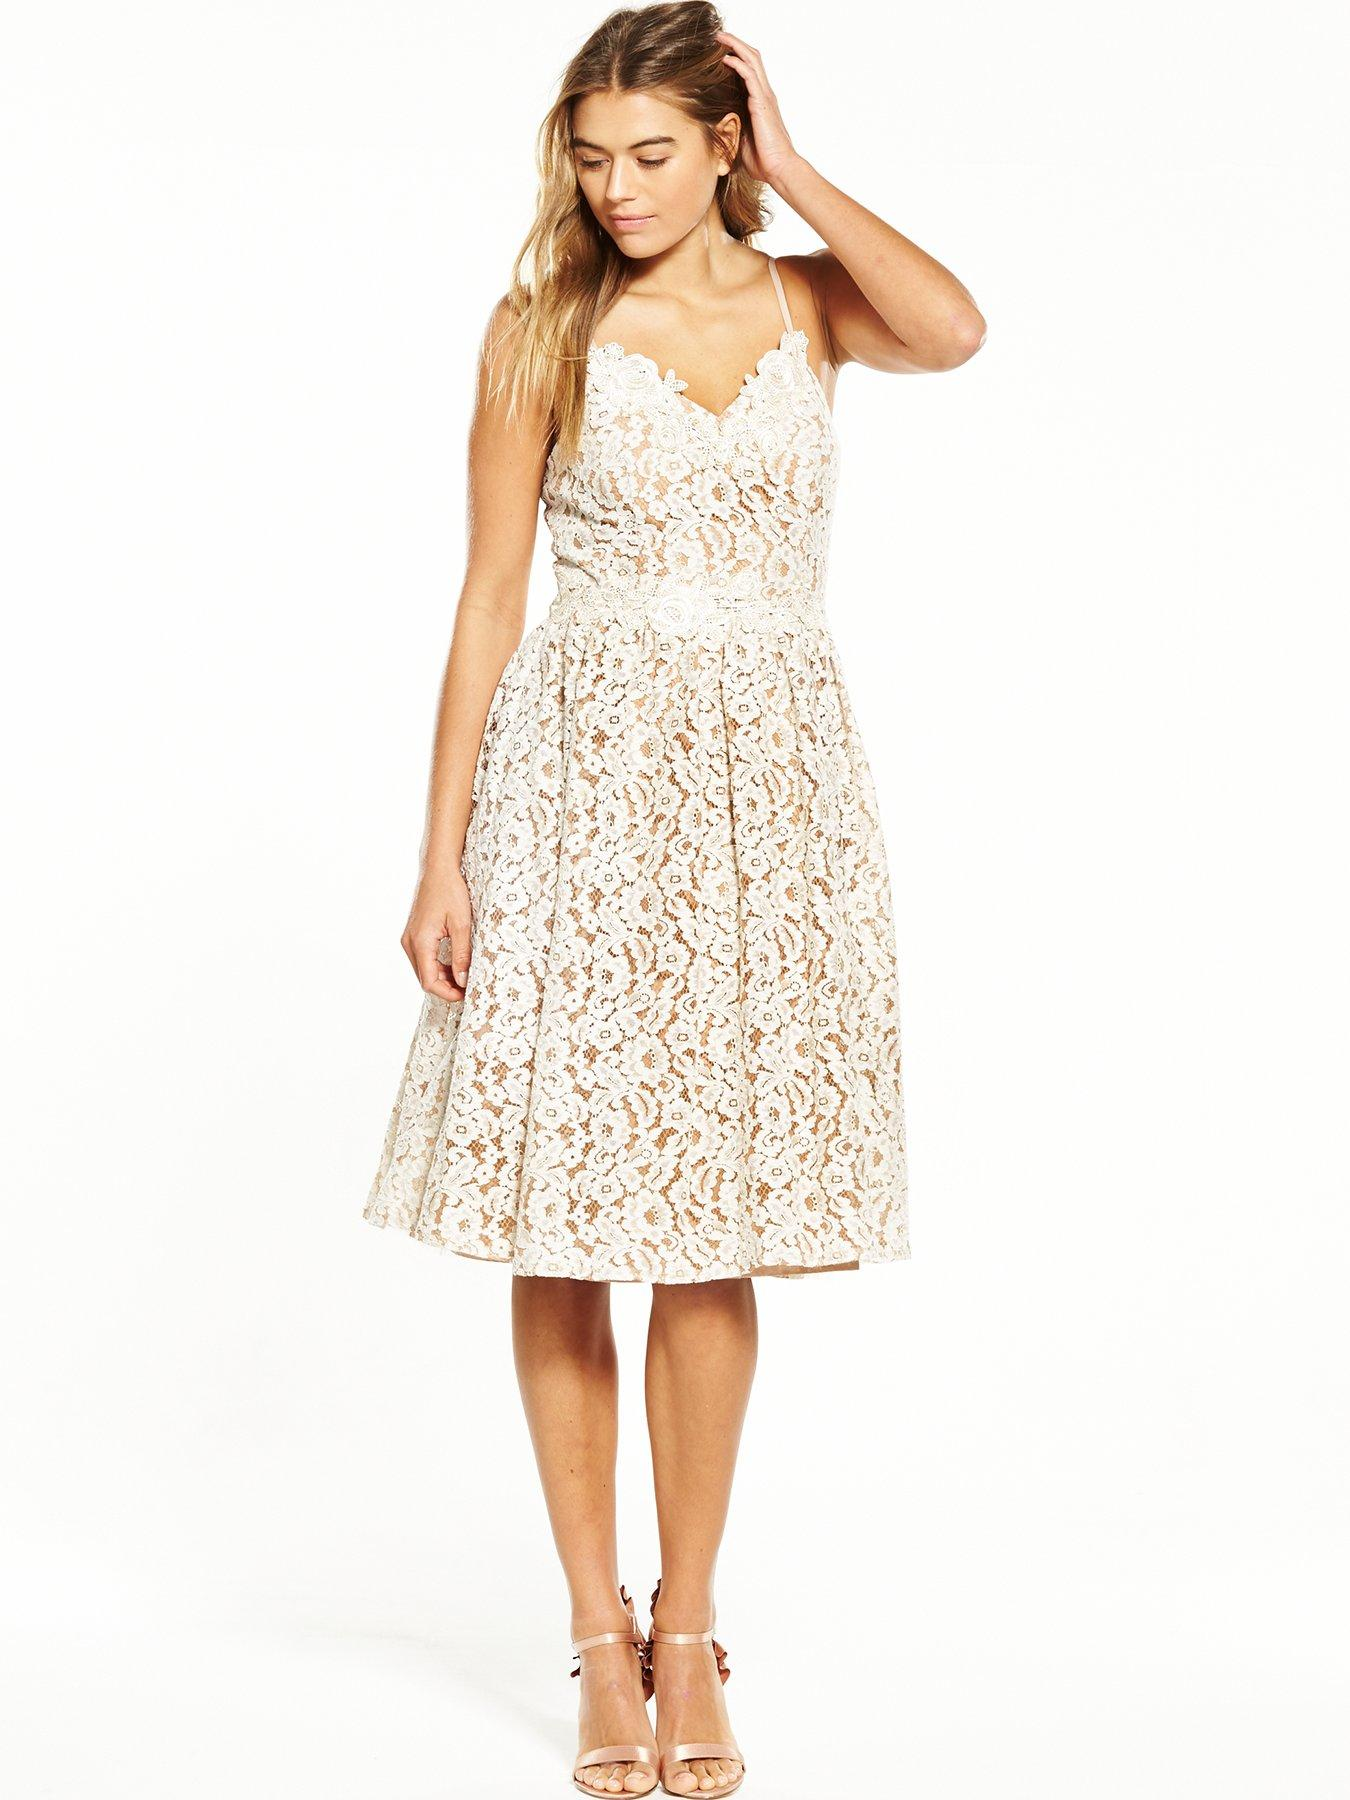 K and co lace dress no lining